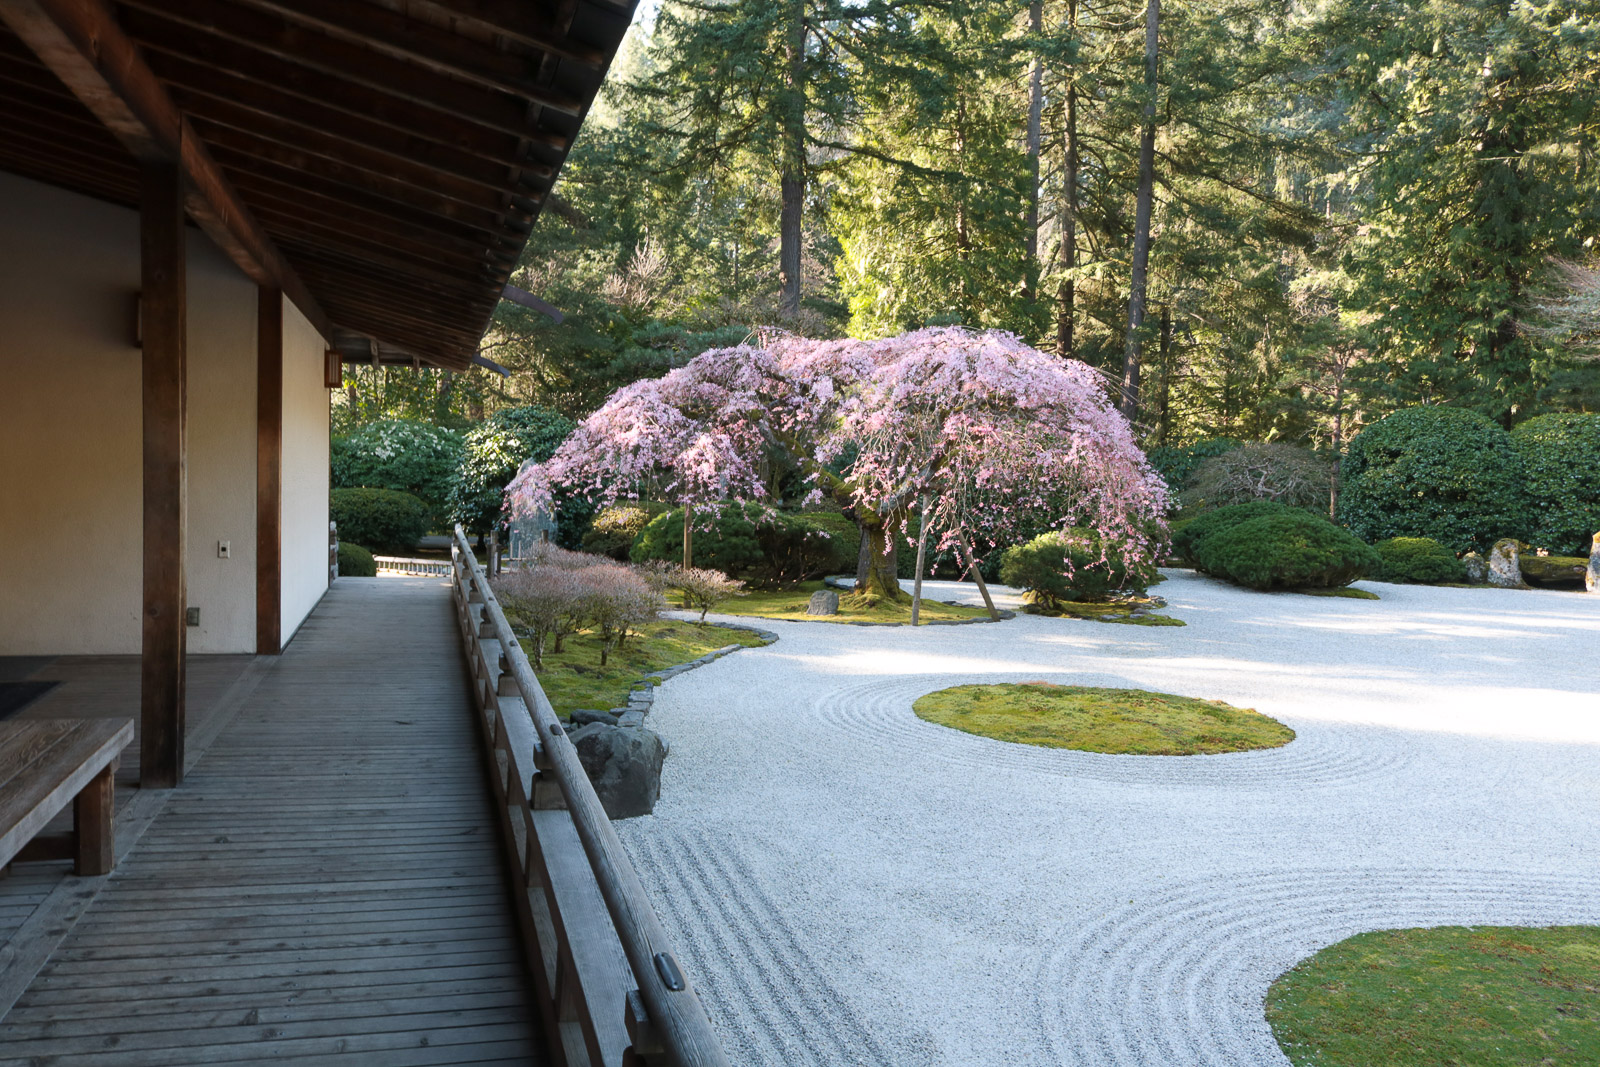 First day of spring portland japanese garden for Portland japanese garden admission